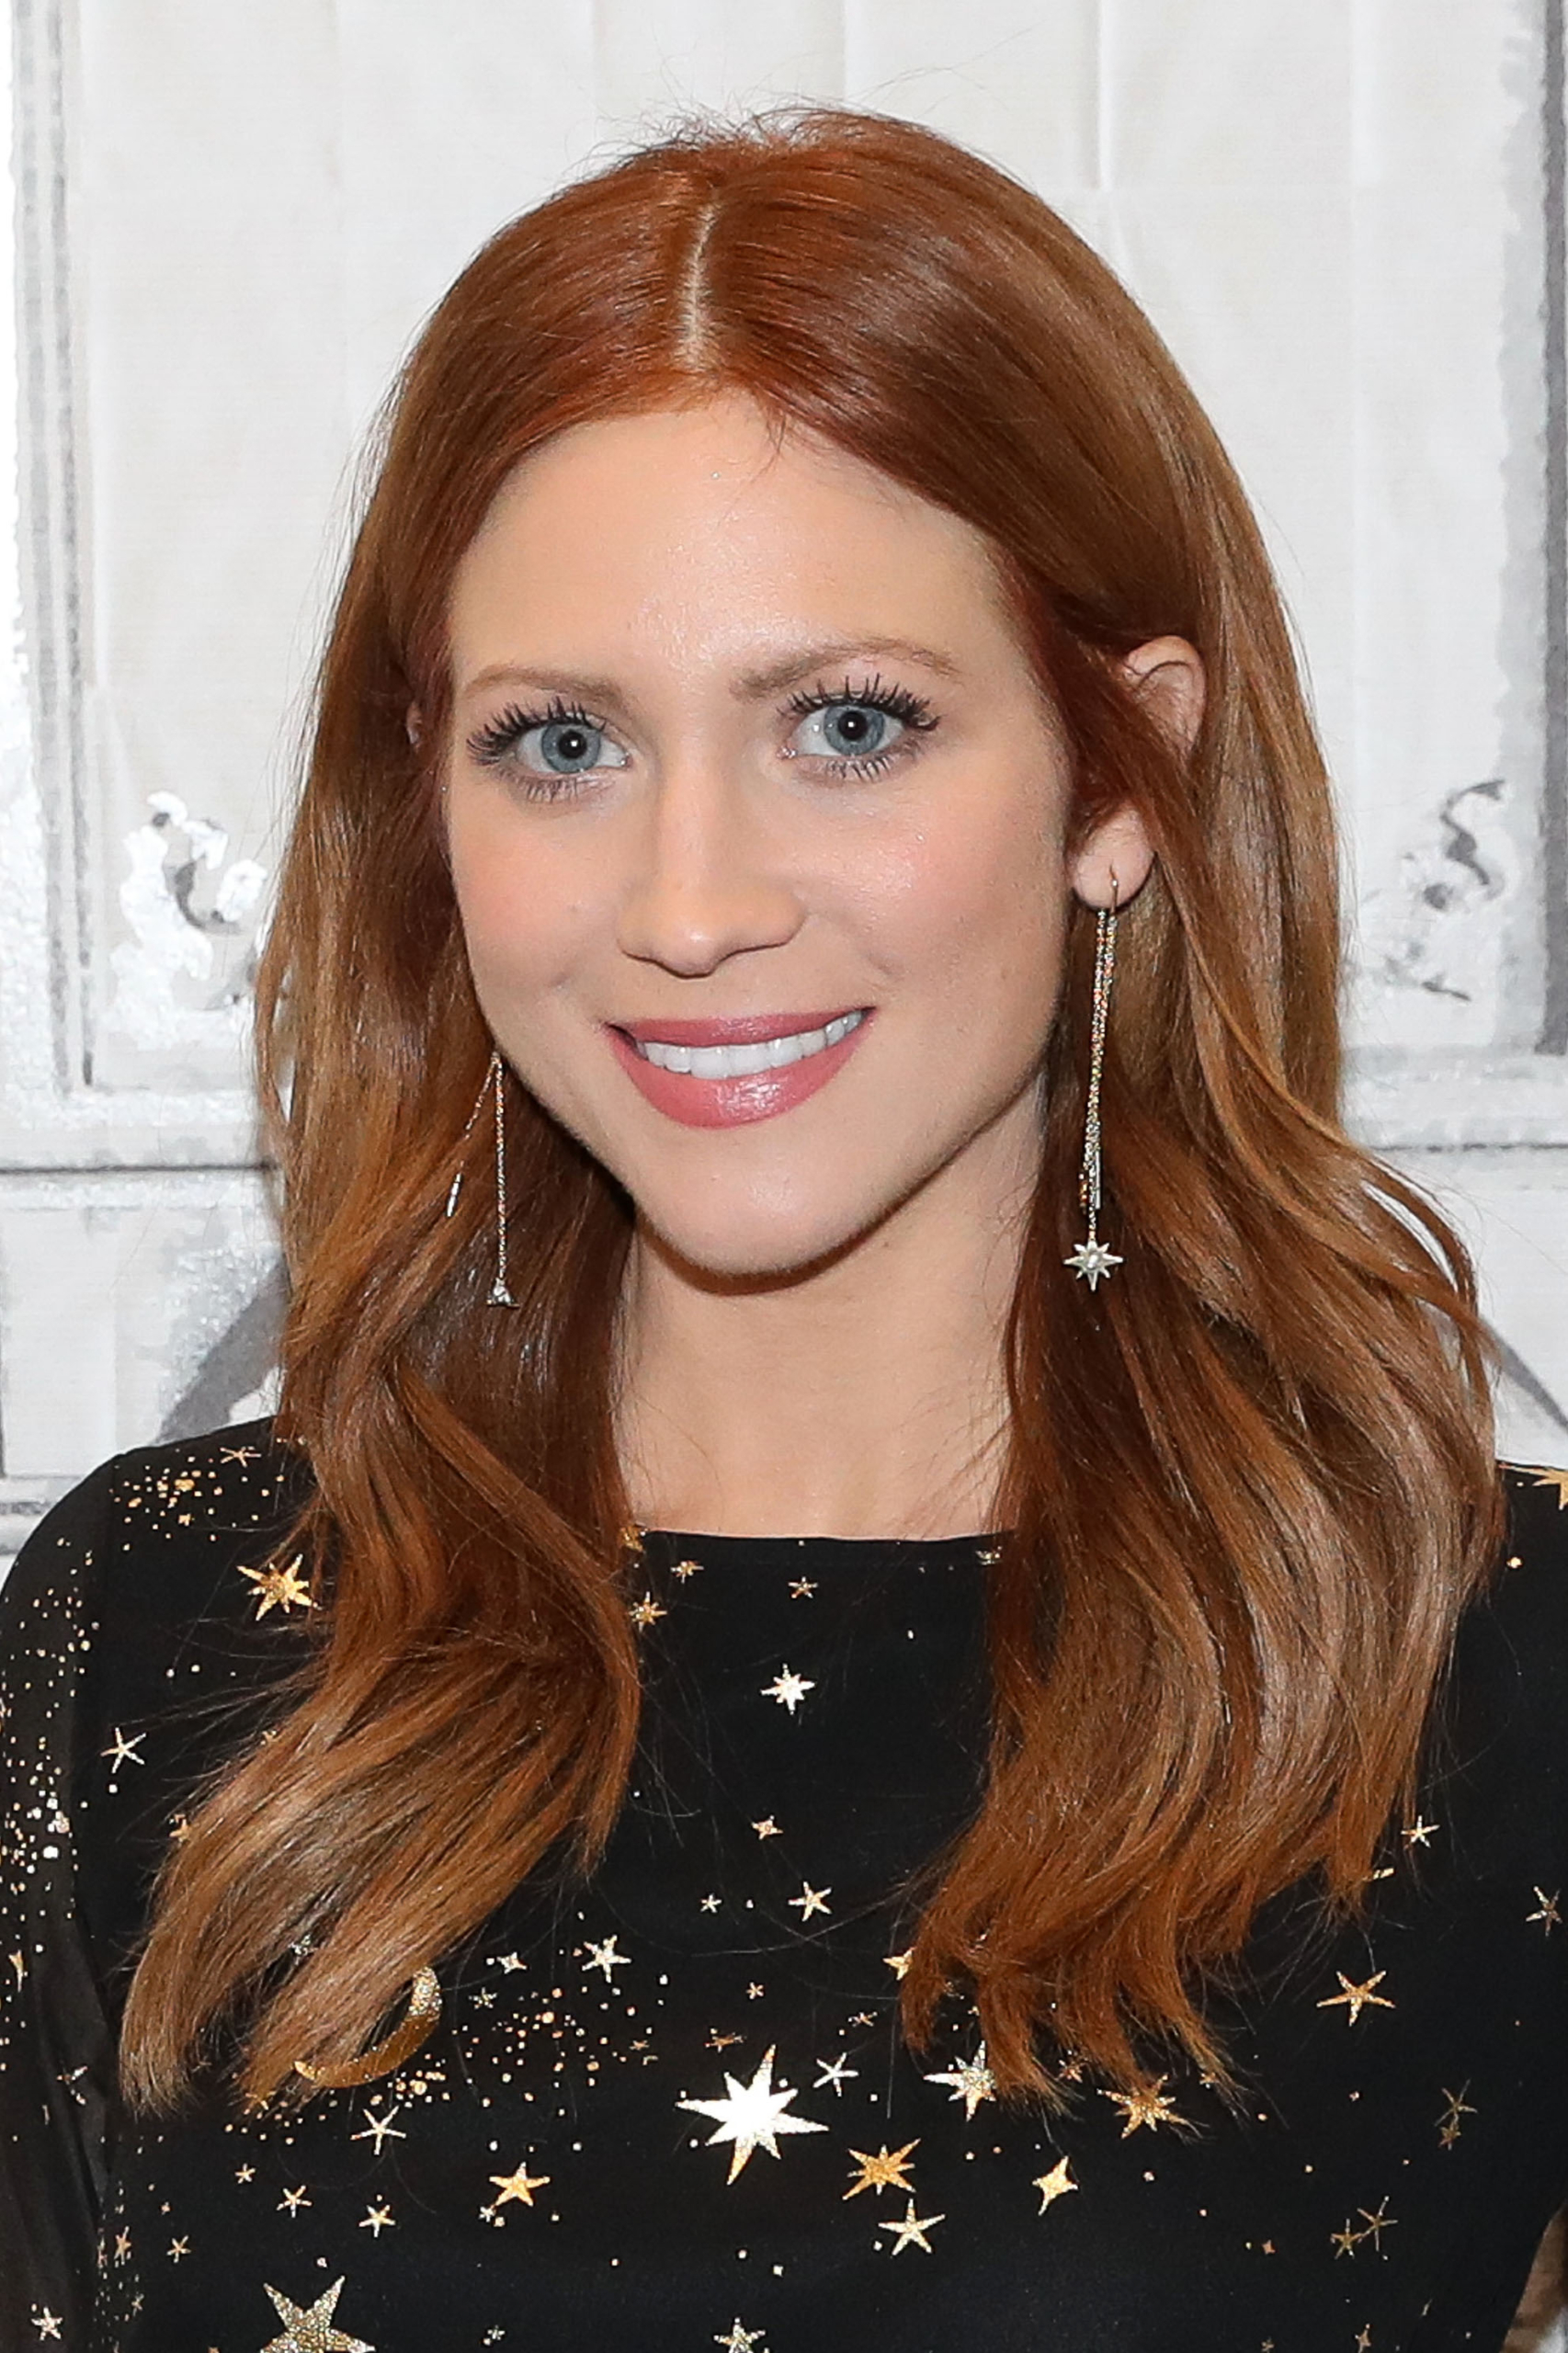 Celebrities With Red Hair – How to Stand Out in a Crowd